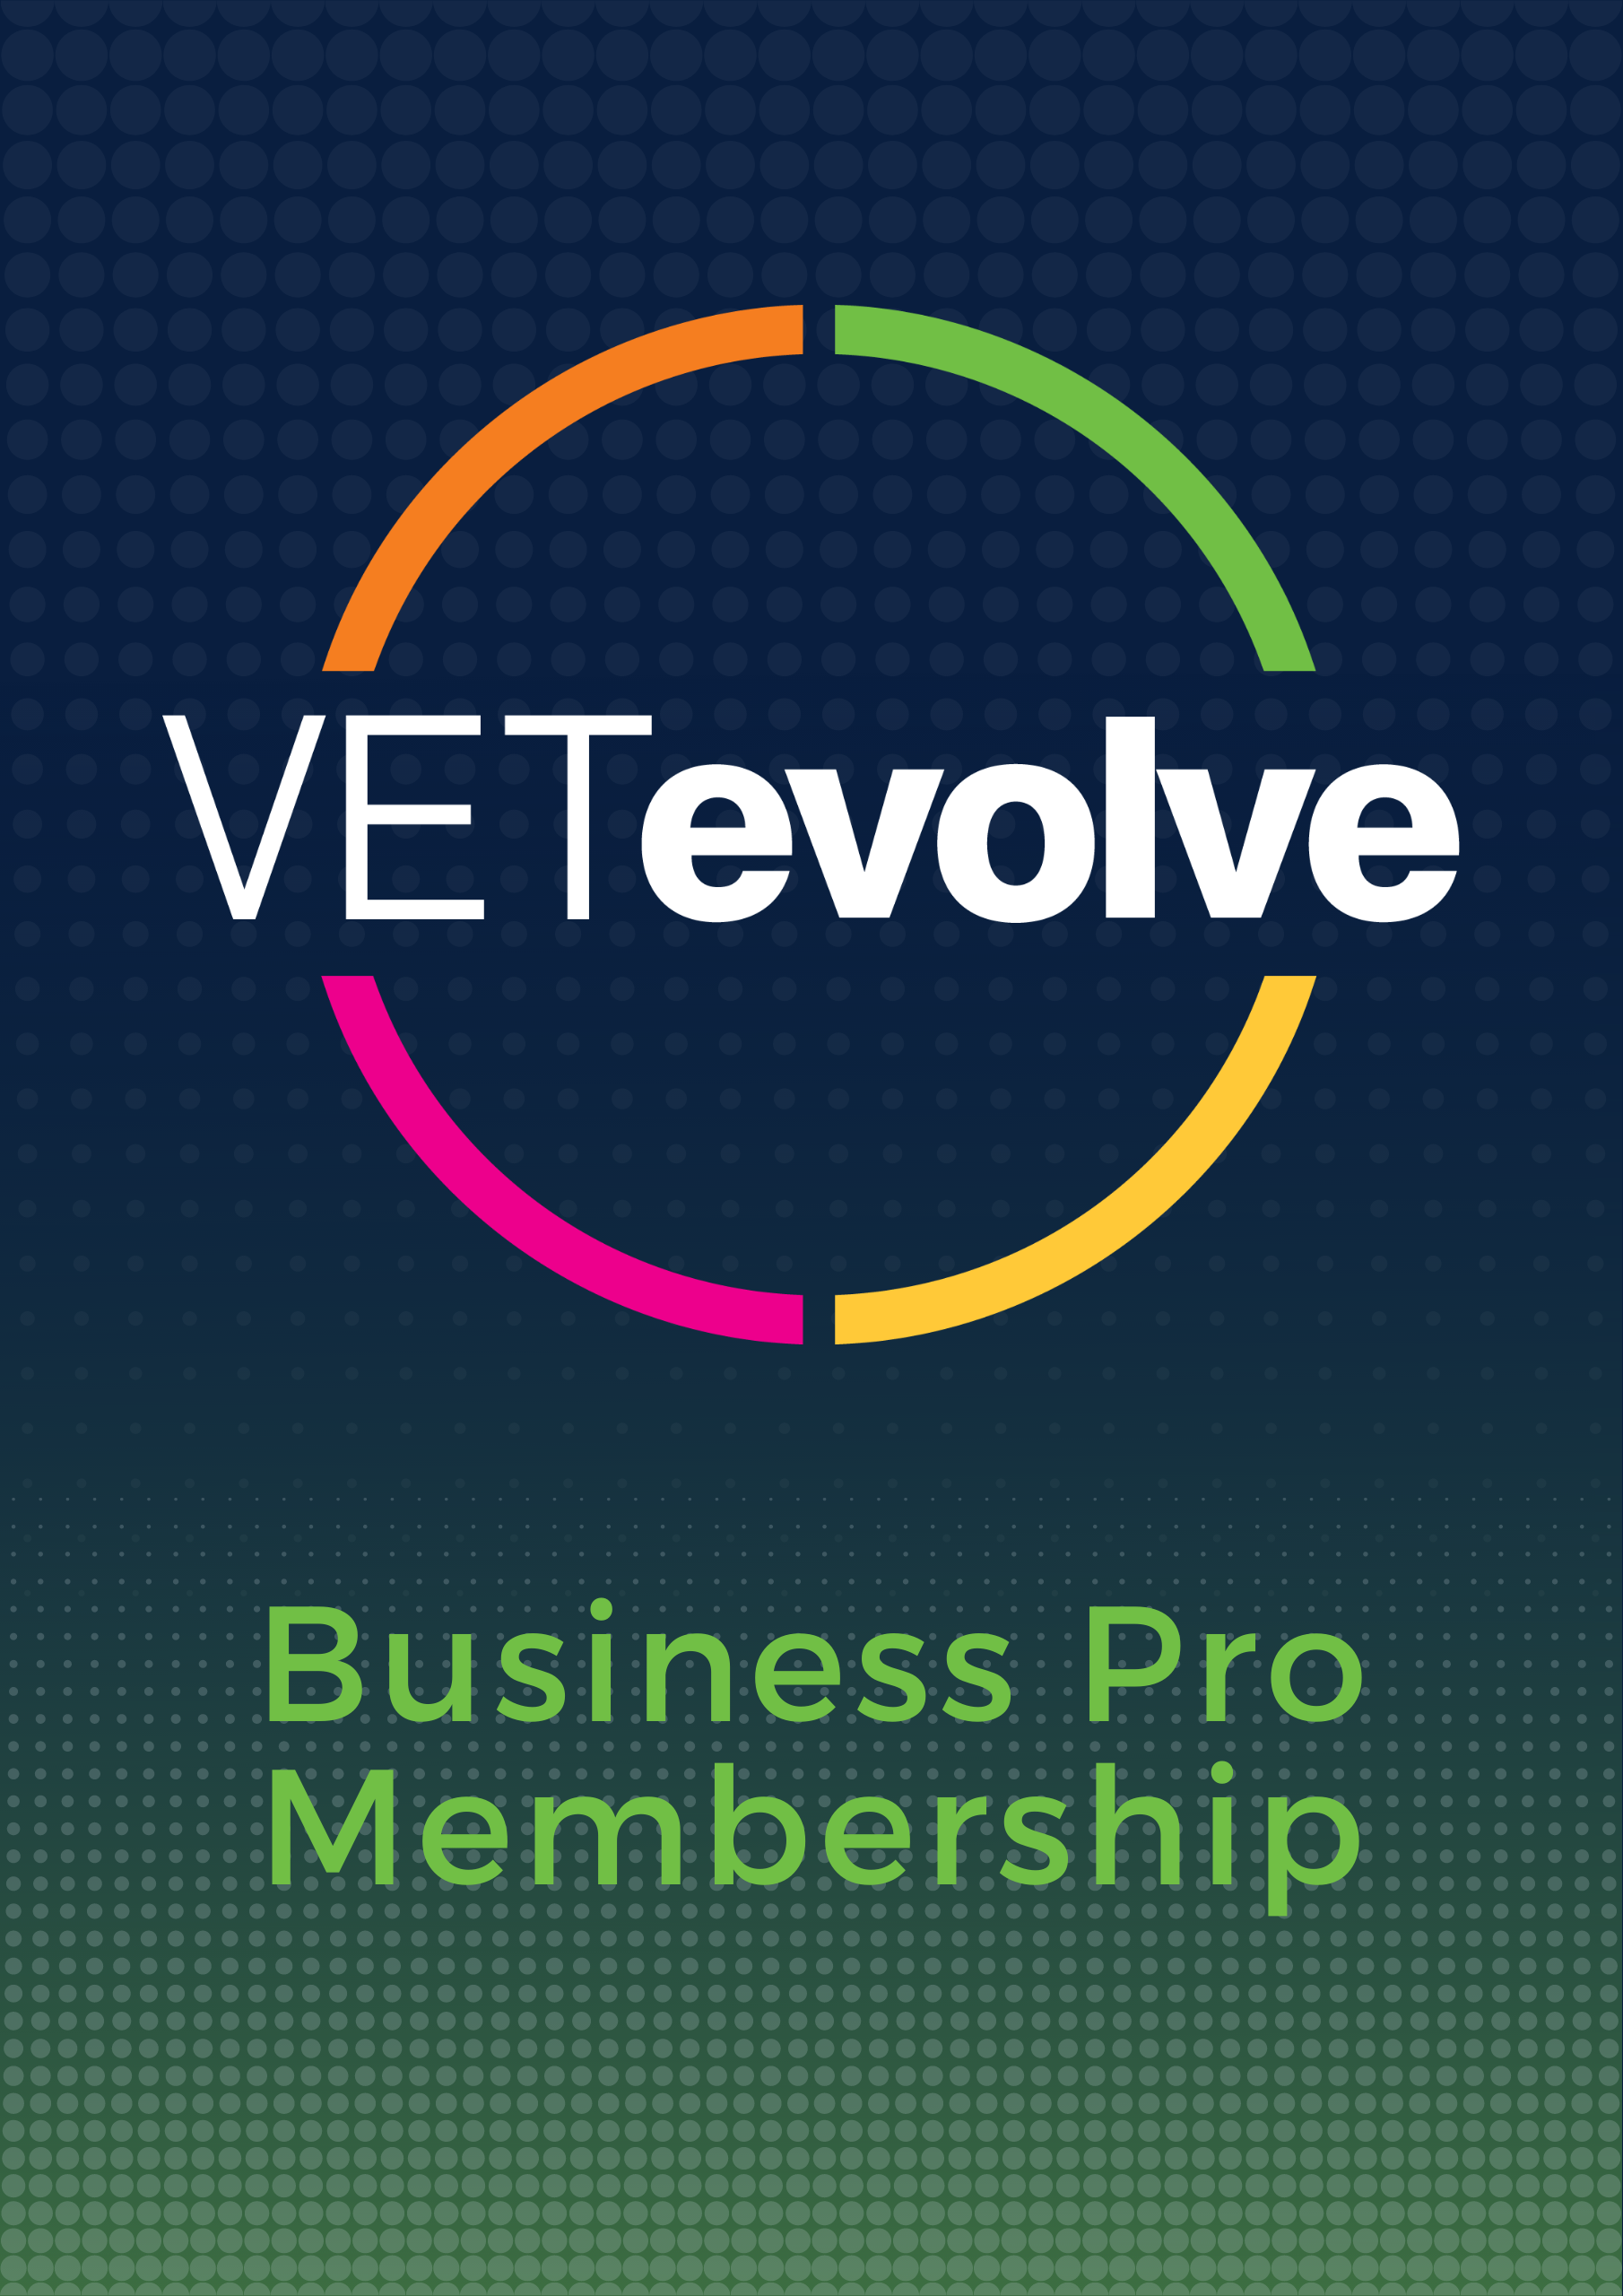 VETevolve Business Pro Membership